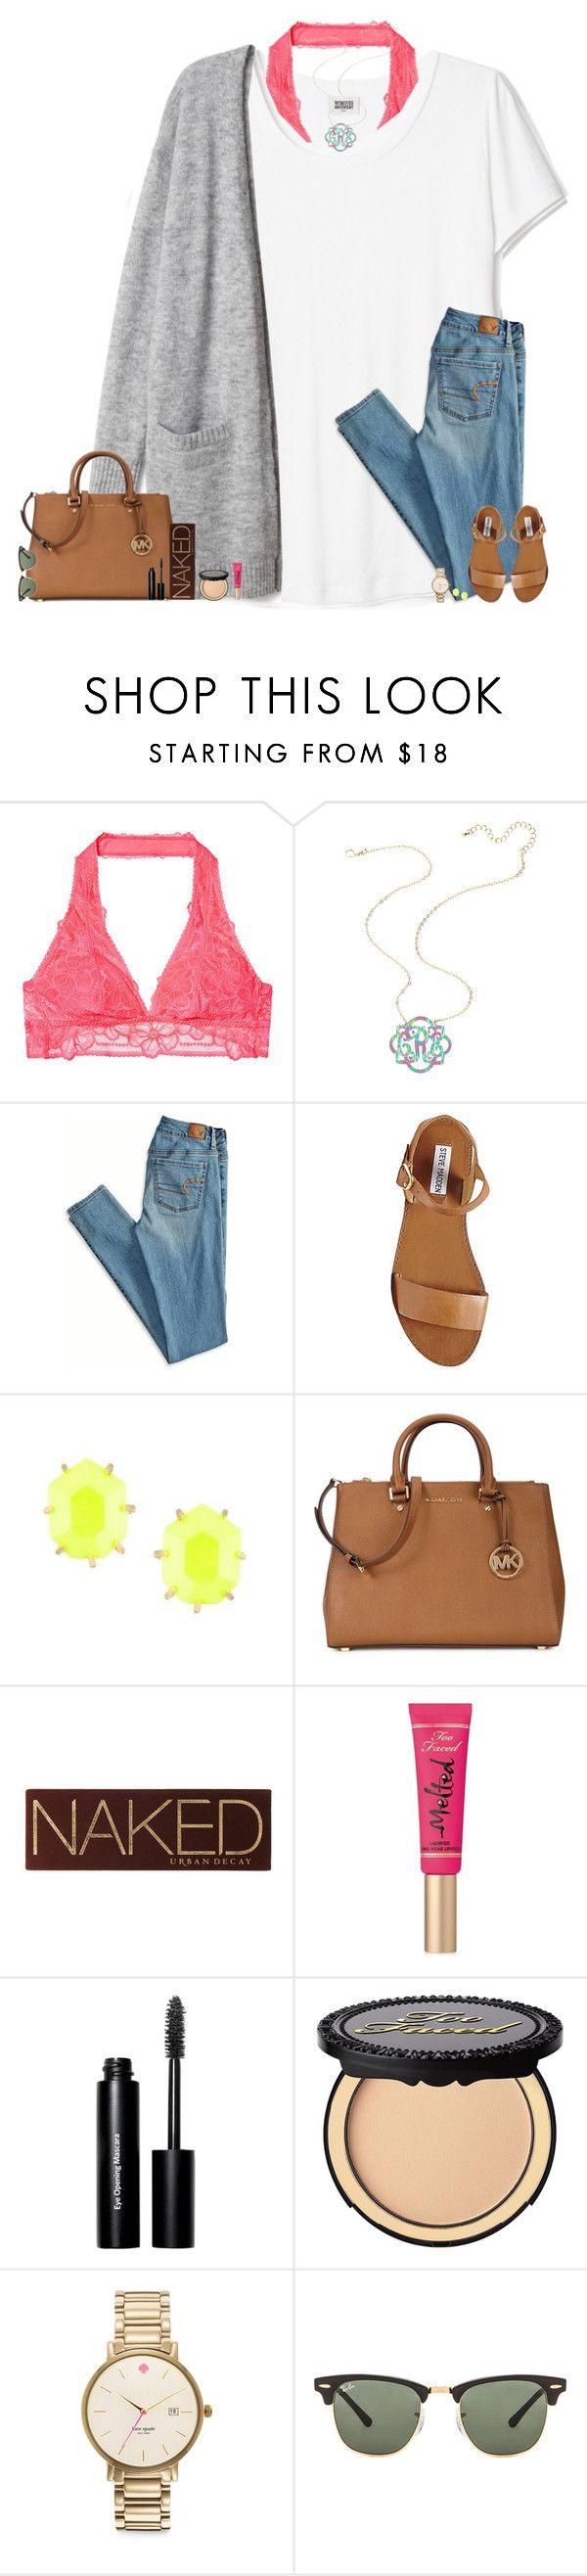 """I'm looking for someone to make me smile through the pain..."" by maggie-prep ❤ liked on Polyvore featuring American Eagle Outfitters, Steve Madden, Kendra Scott, Michael Kors, Urban Decay, Too Faced Cosmetics, Bobbi Brown Cosmetics, Kate Spade and Ray-Ban"